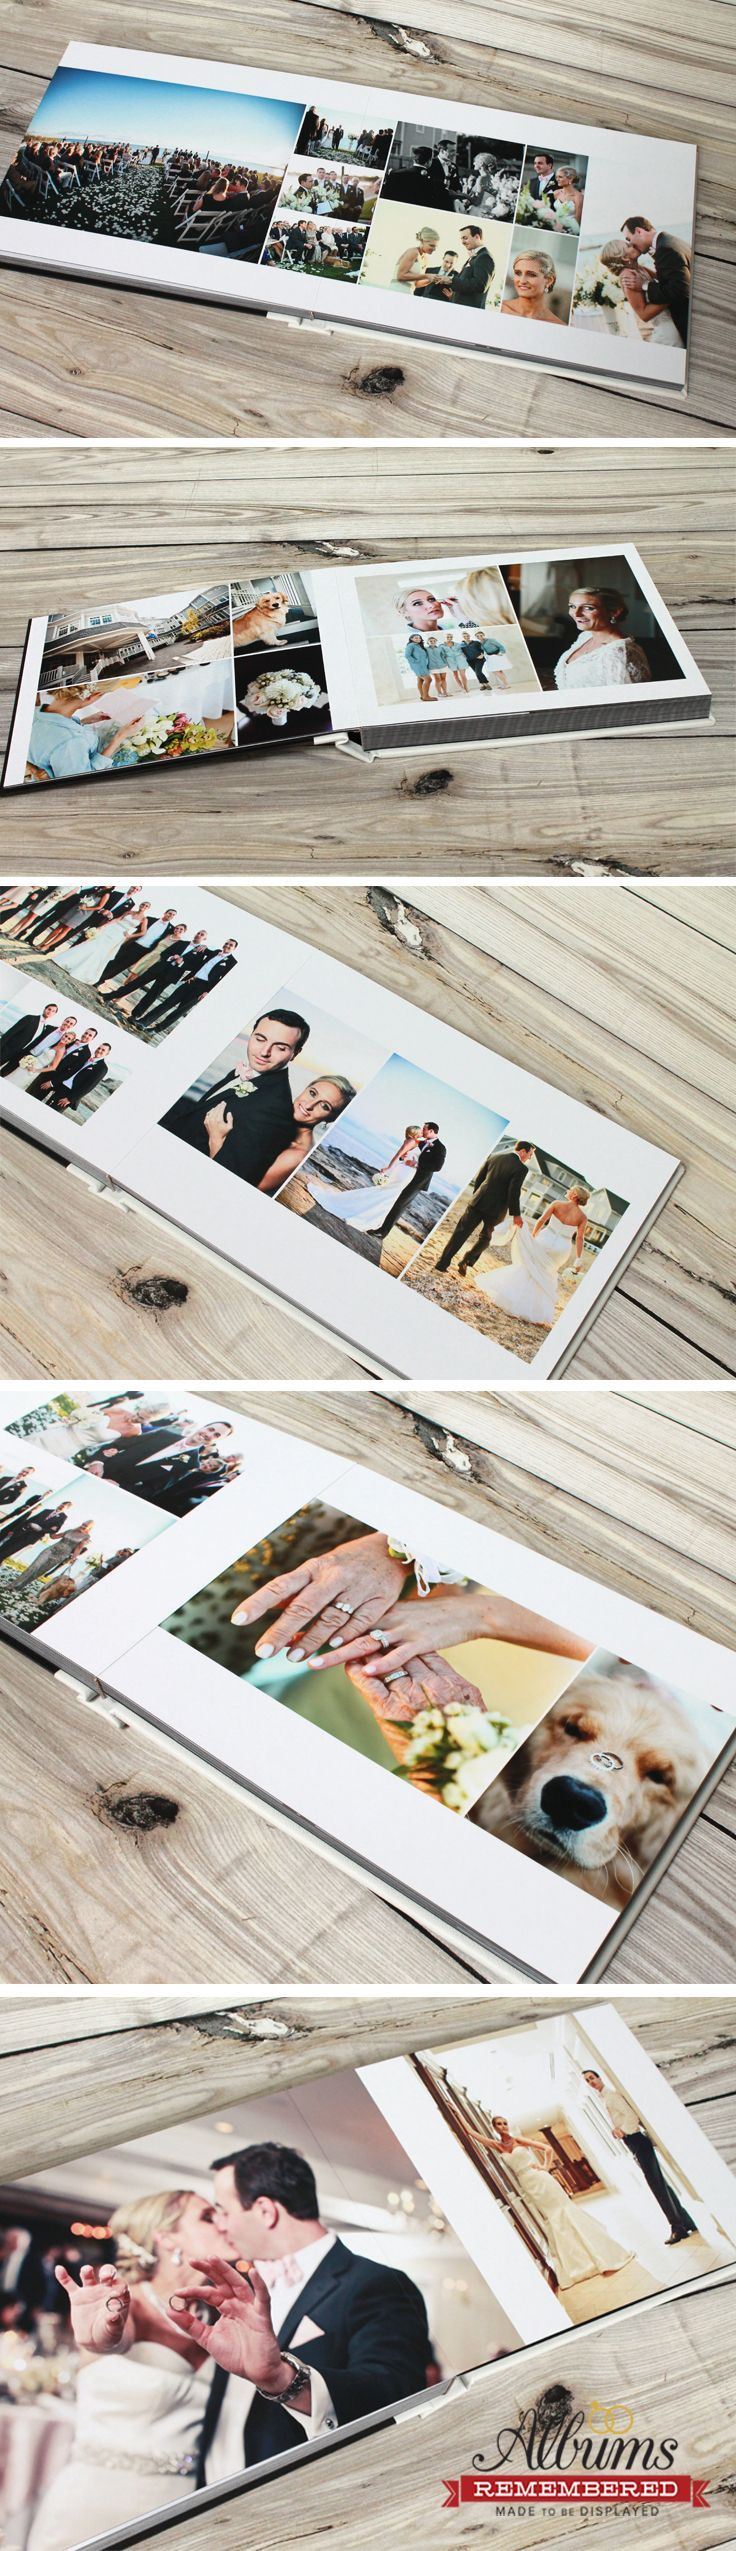 Professional wedding album design  www.albumsremembered.com